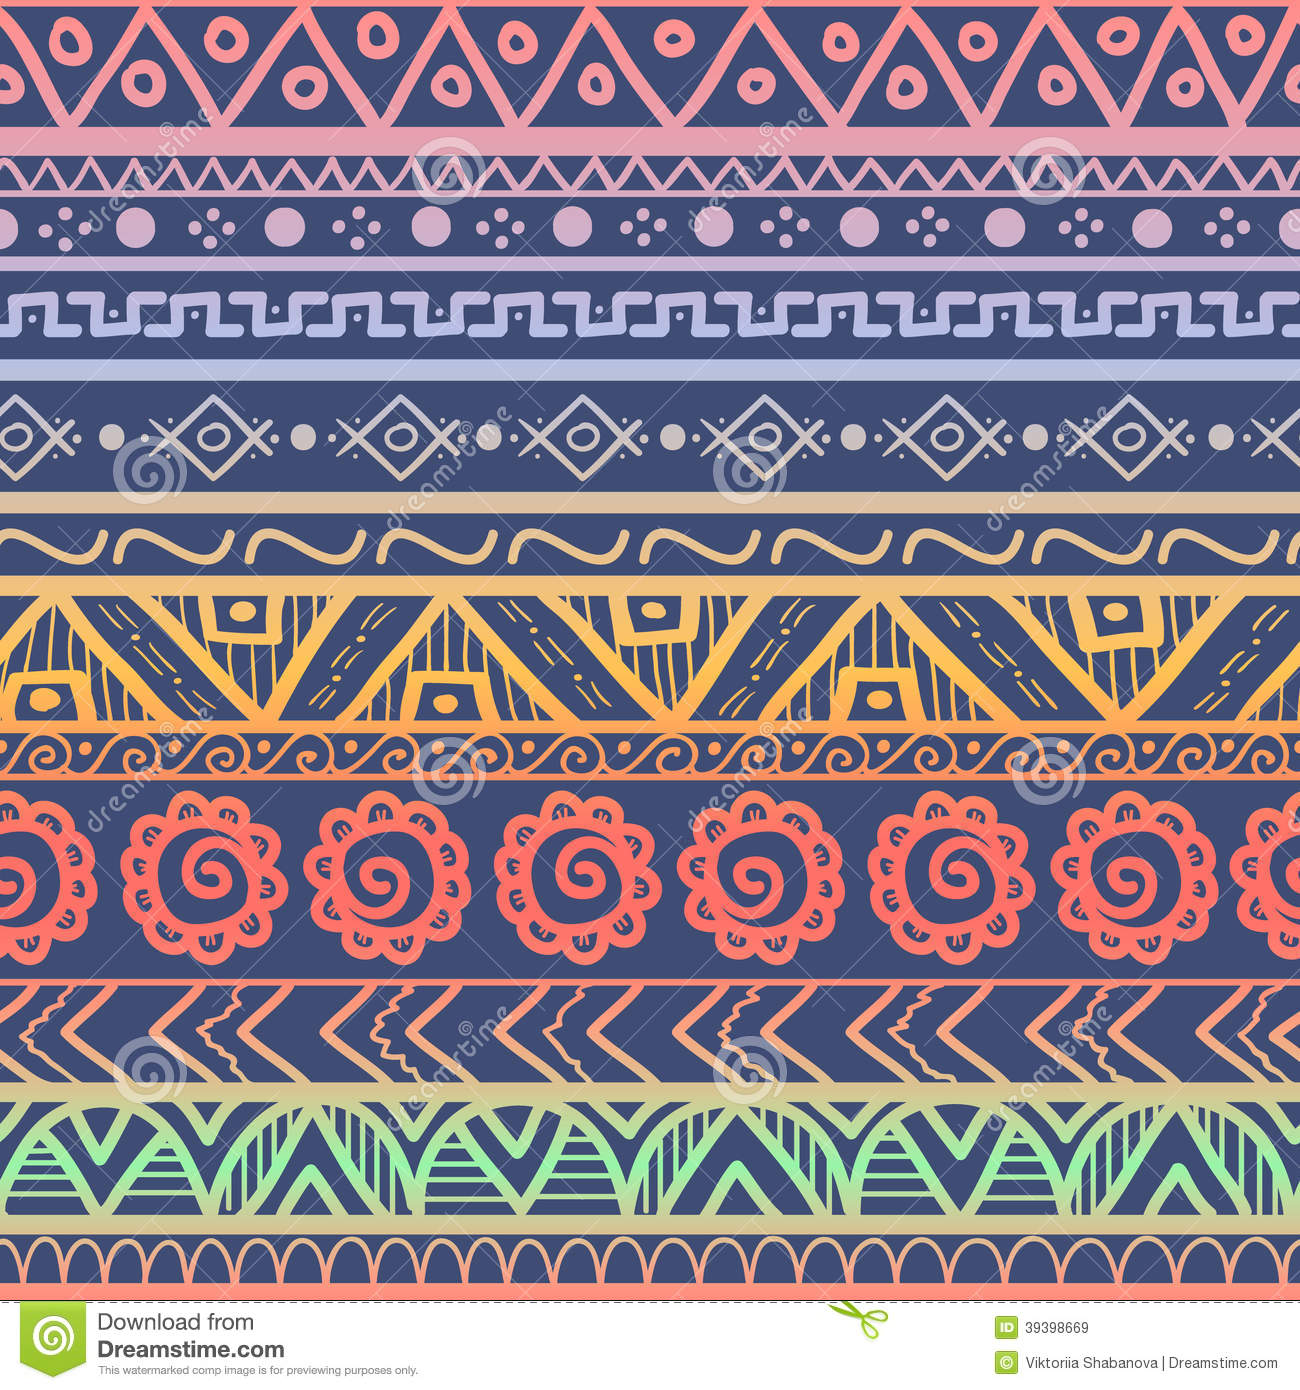 1300x1390 - Cool Tribal Backgrounds 43